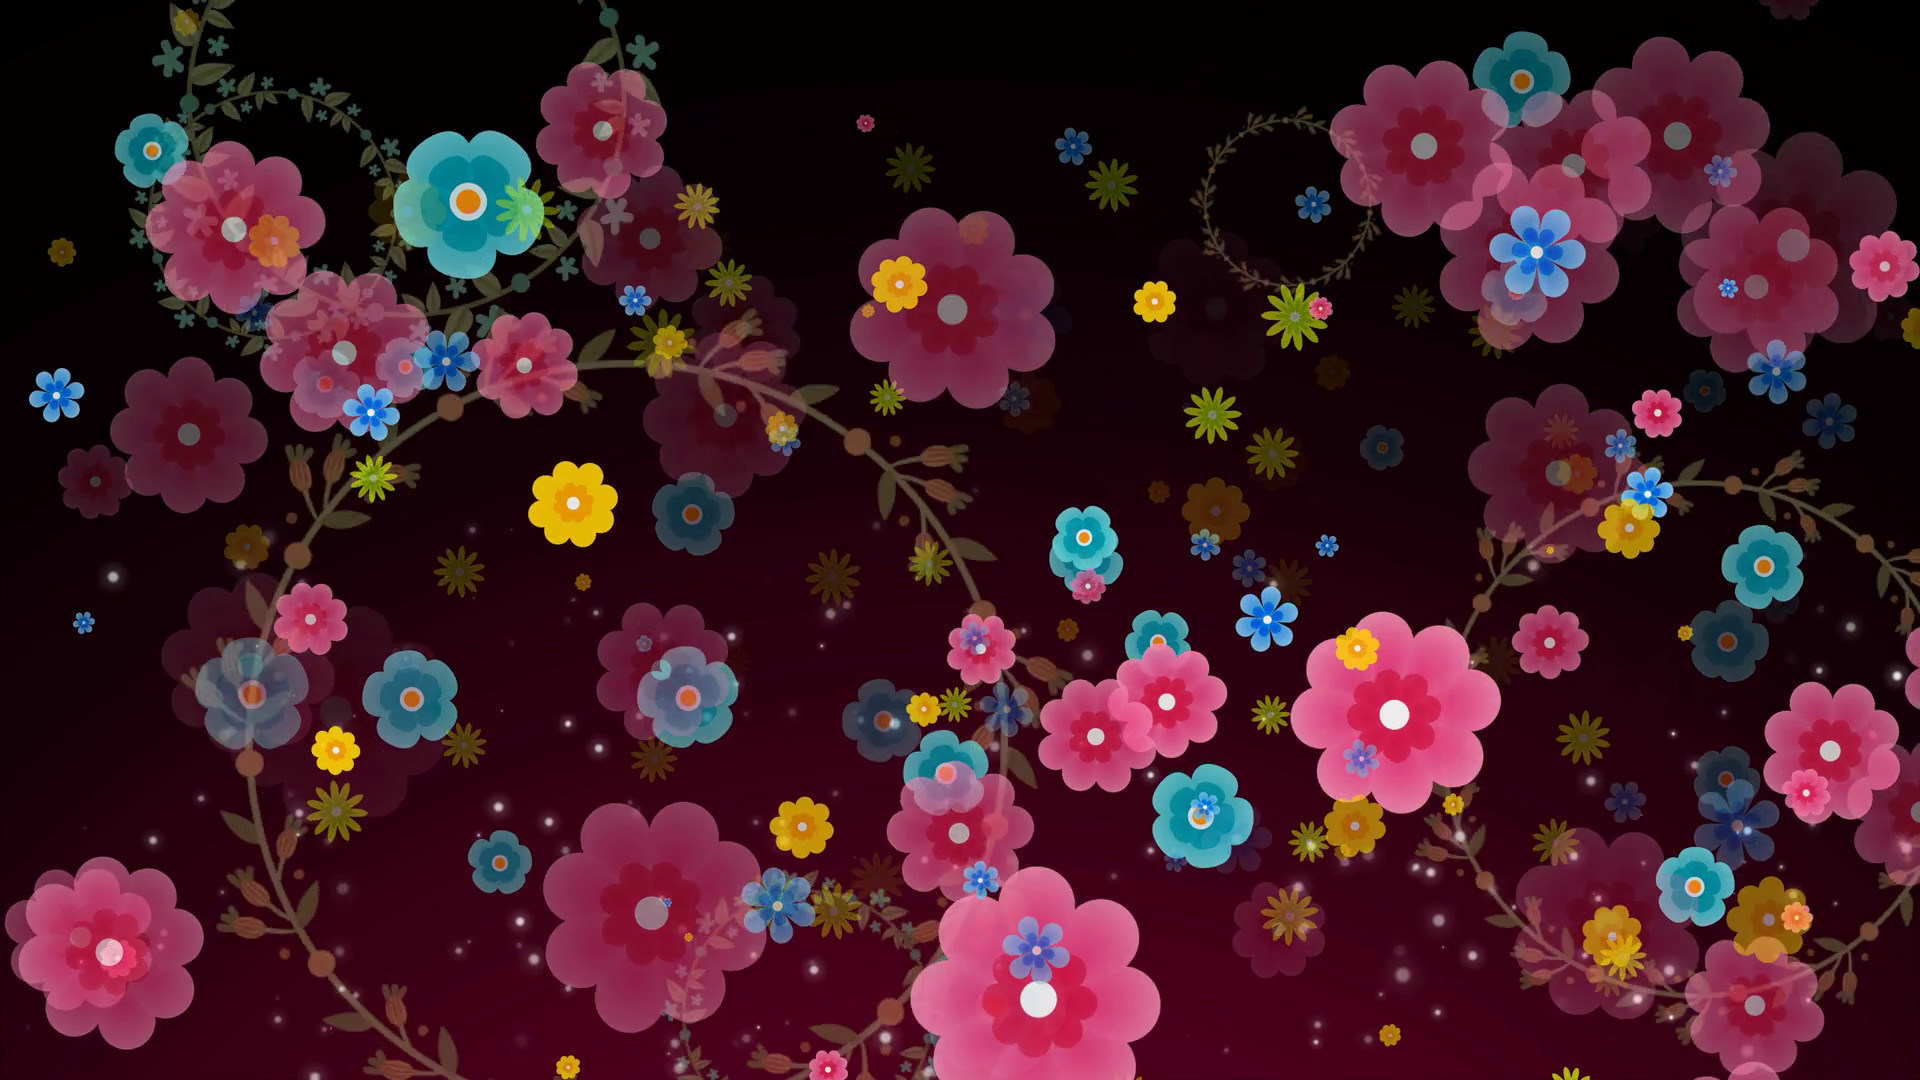 1920x1080 Seamless animation of colorful flower motion graphic with flower garland  ring background pattern texture in 4k